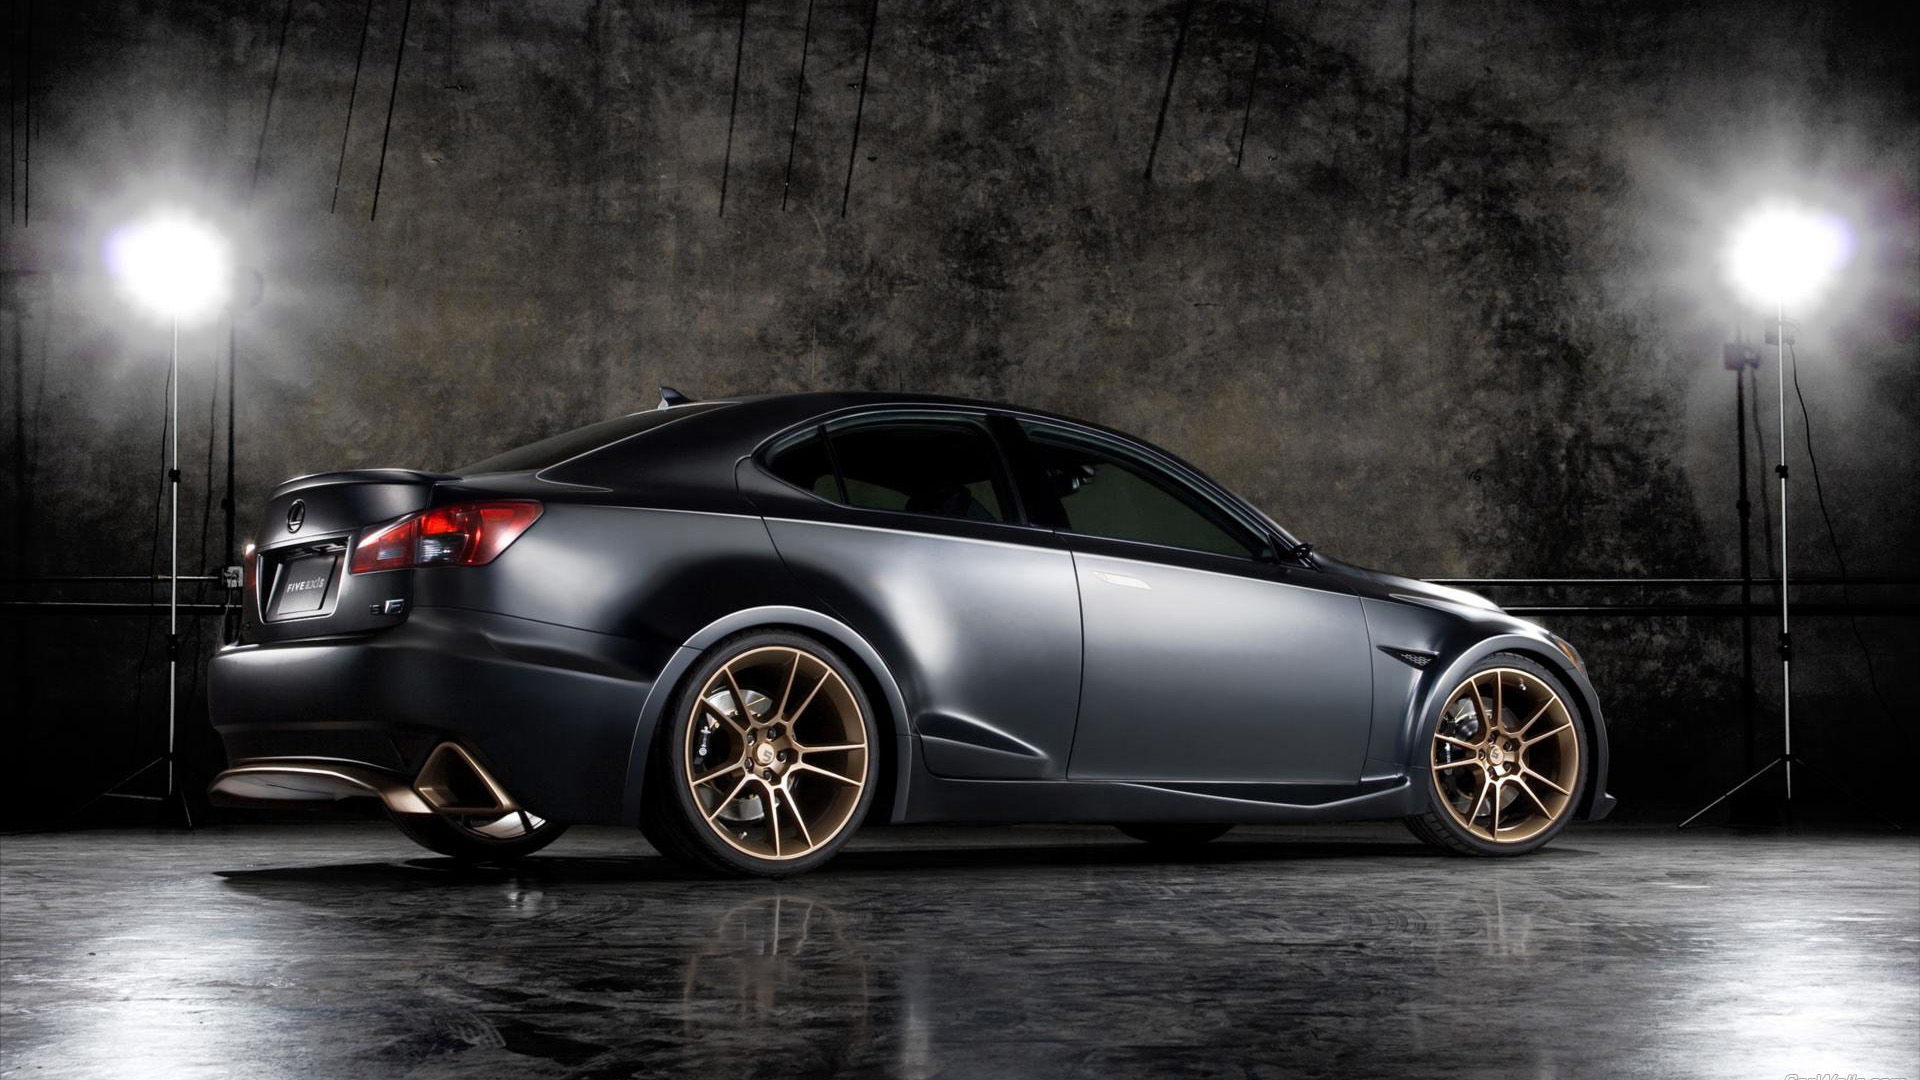 2009 Lexus IS-F Five Axis Project